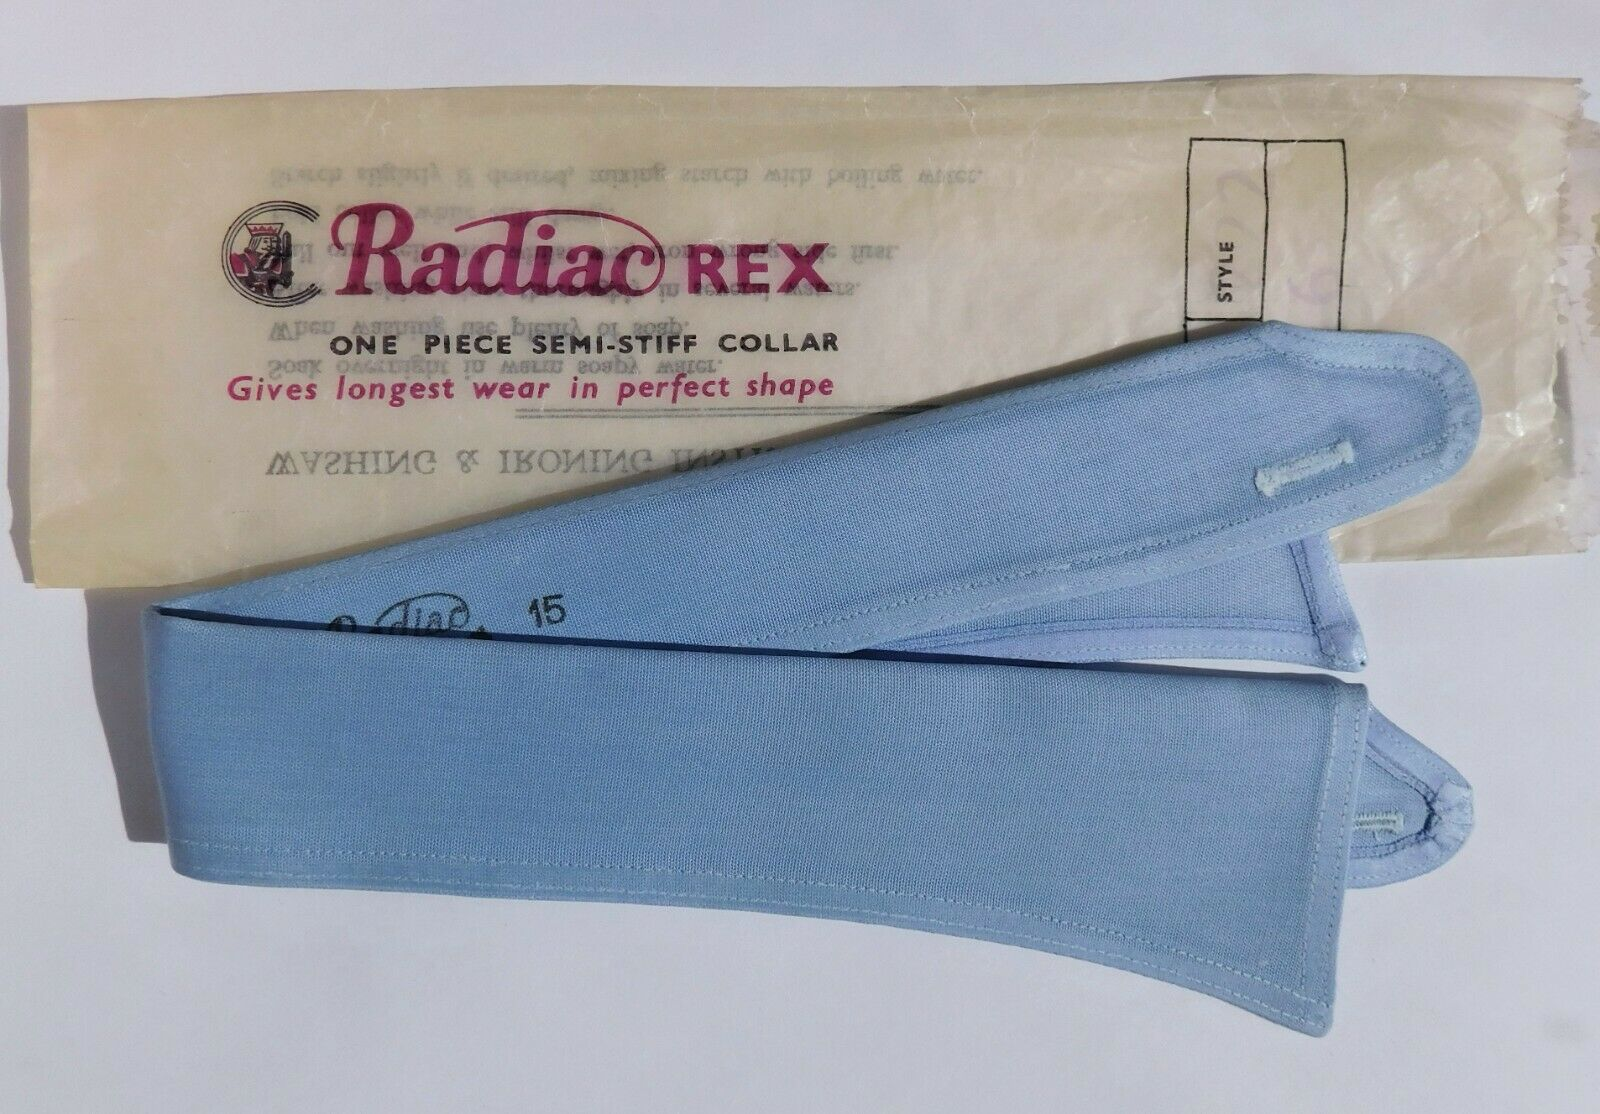 Blue Radiac Rex vintage shirt collar size 15 UNUSED detachable semi stiff